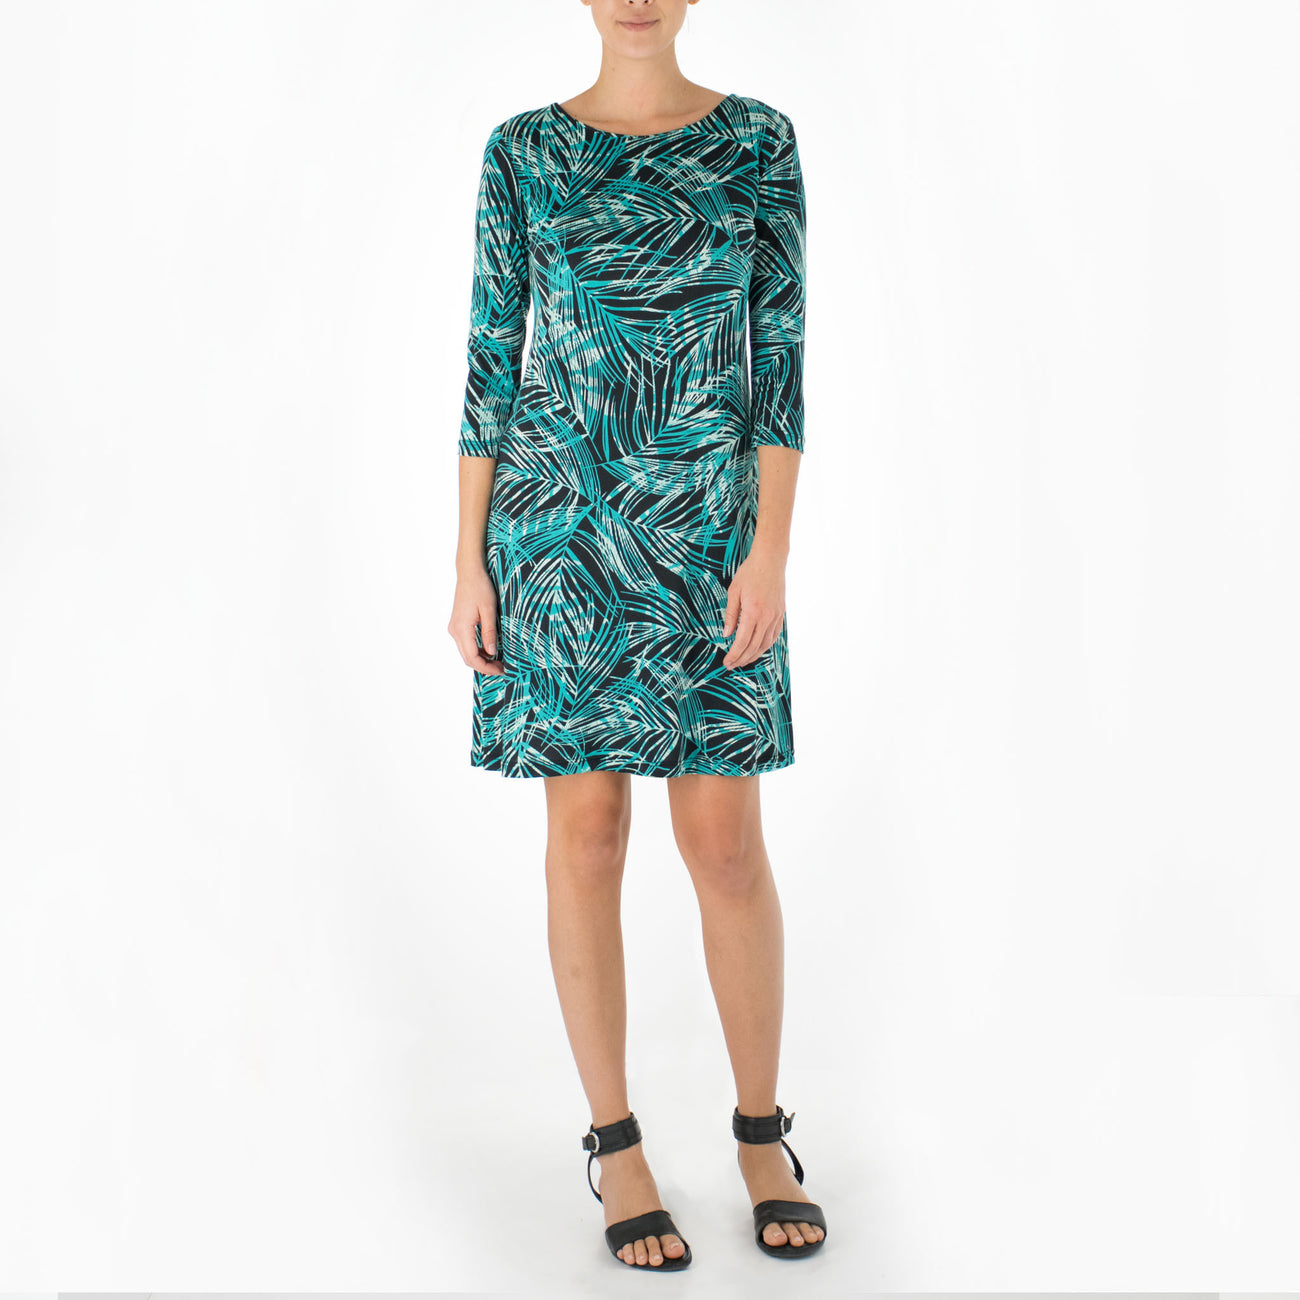 FEATHERED LEAVES SHORT 3/4 SLEEVE SHEATH DRESS